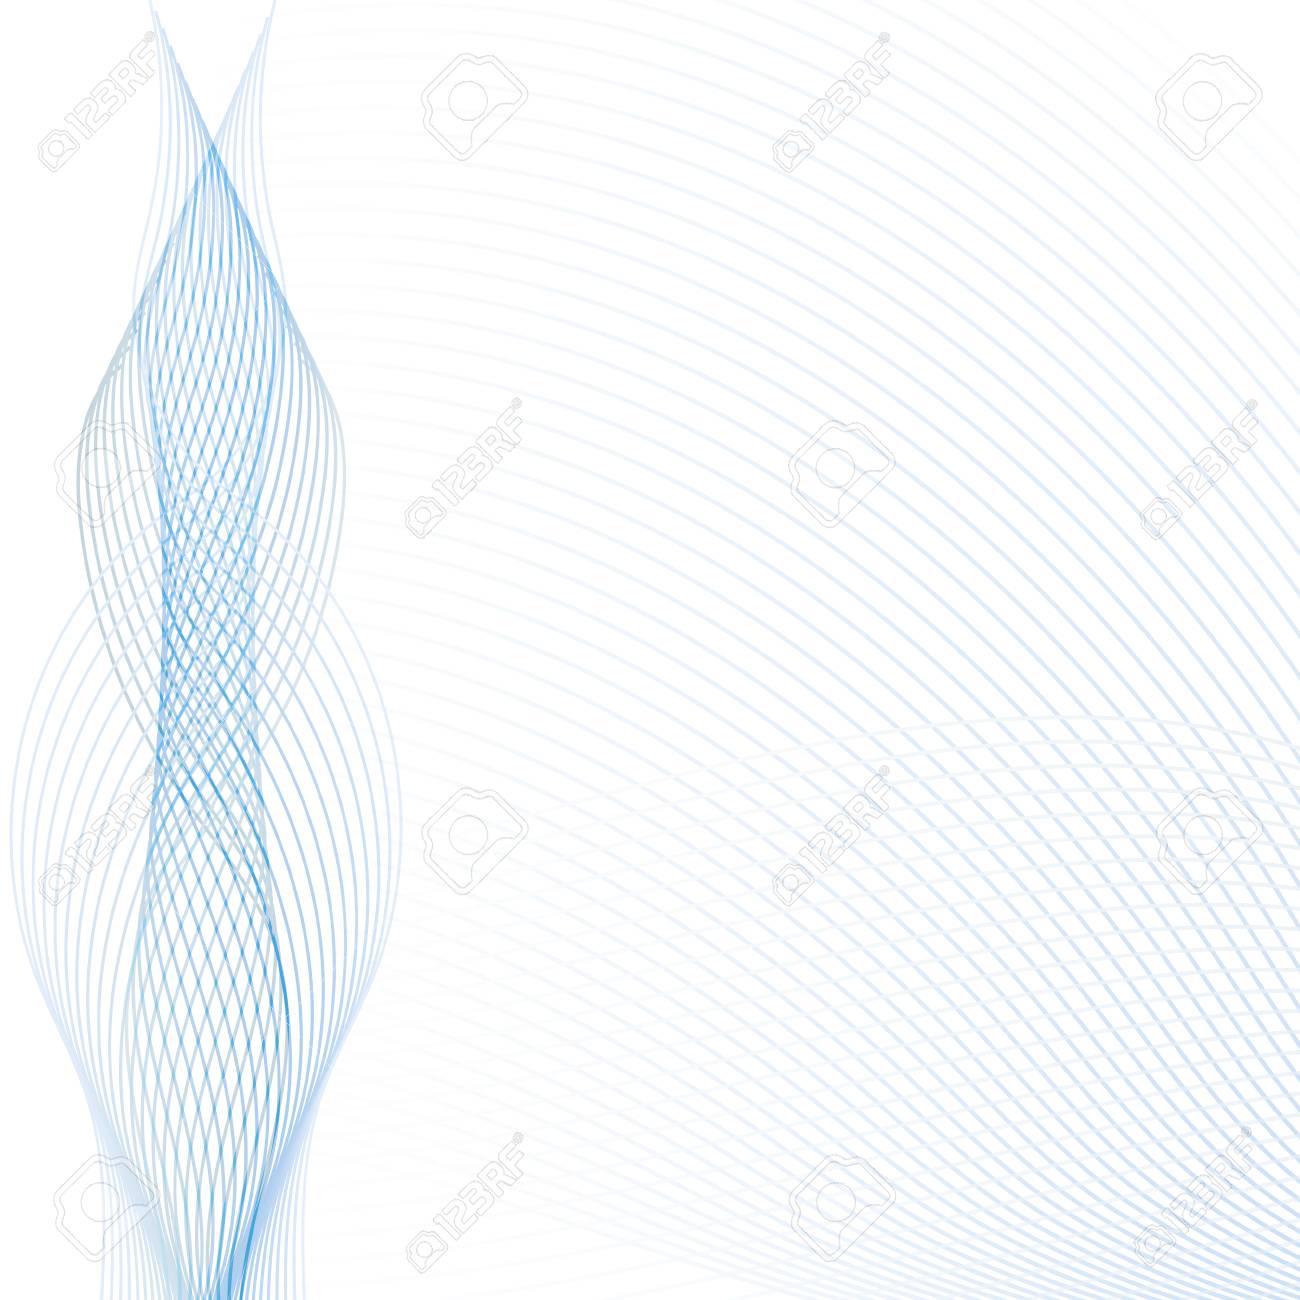 abstract wave background with transparent blue and gray lines